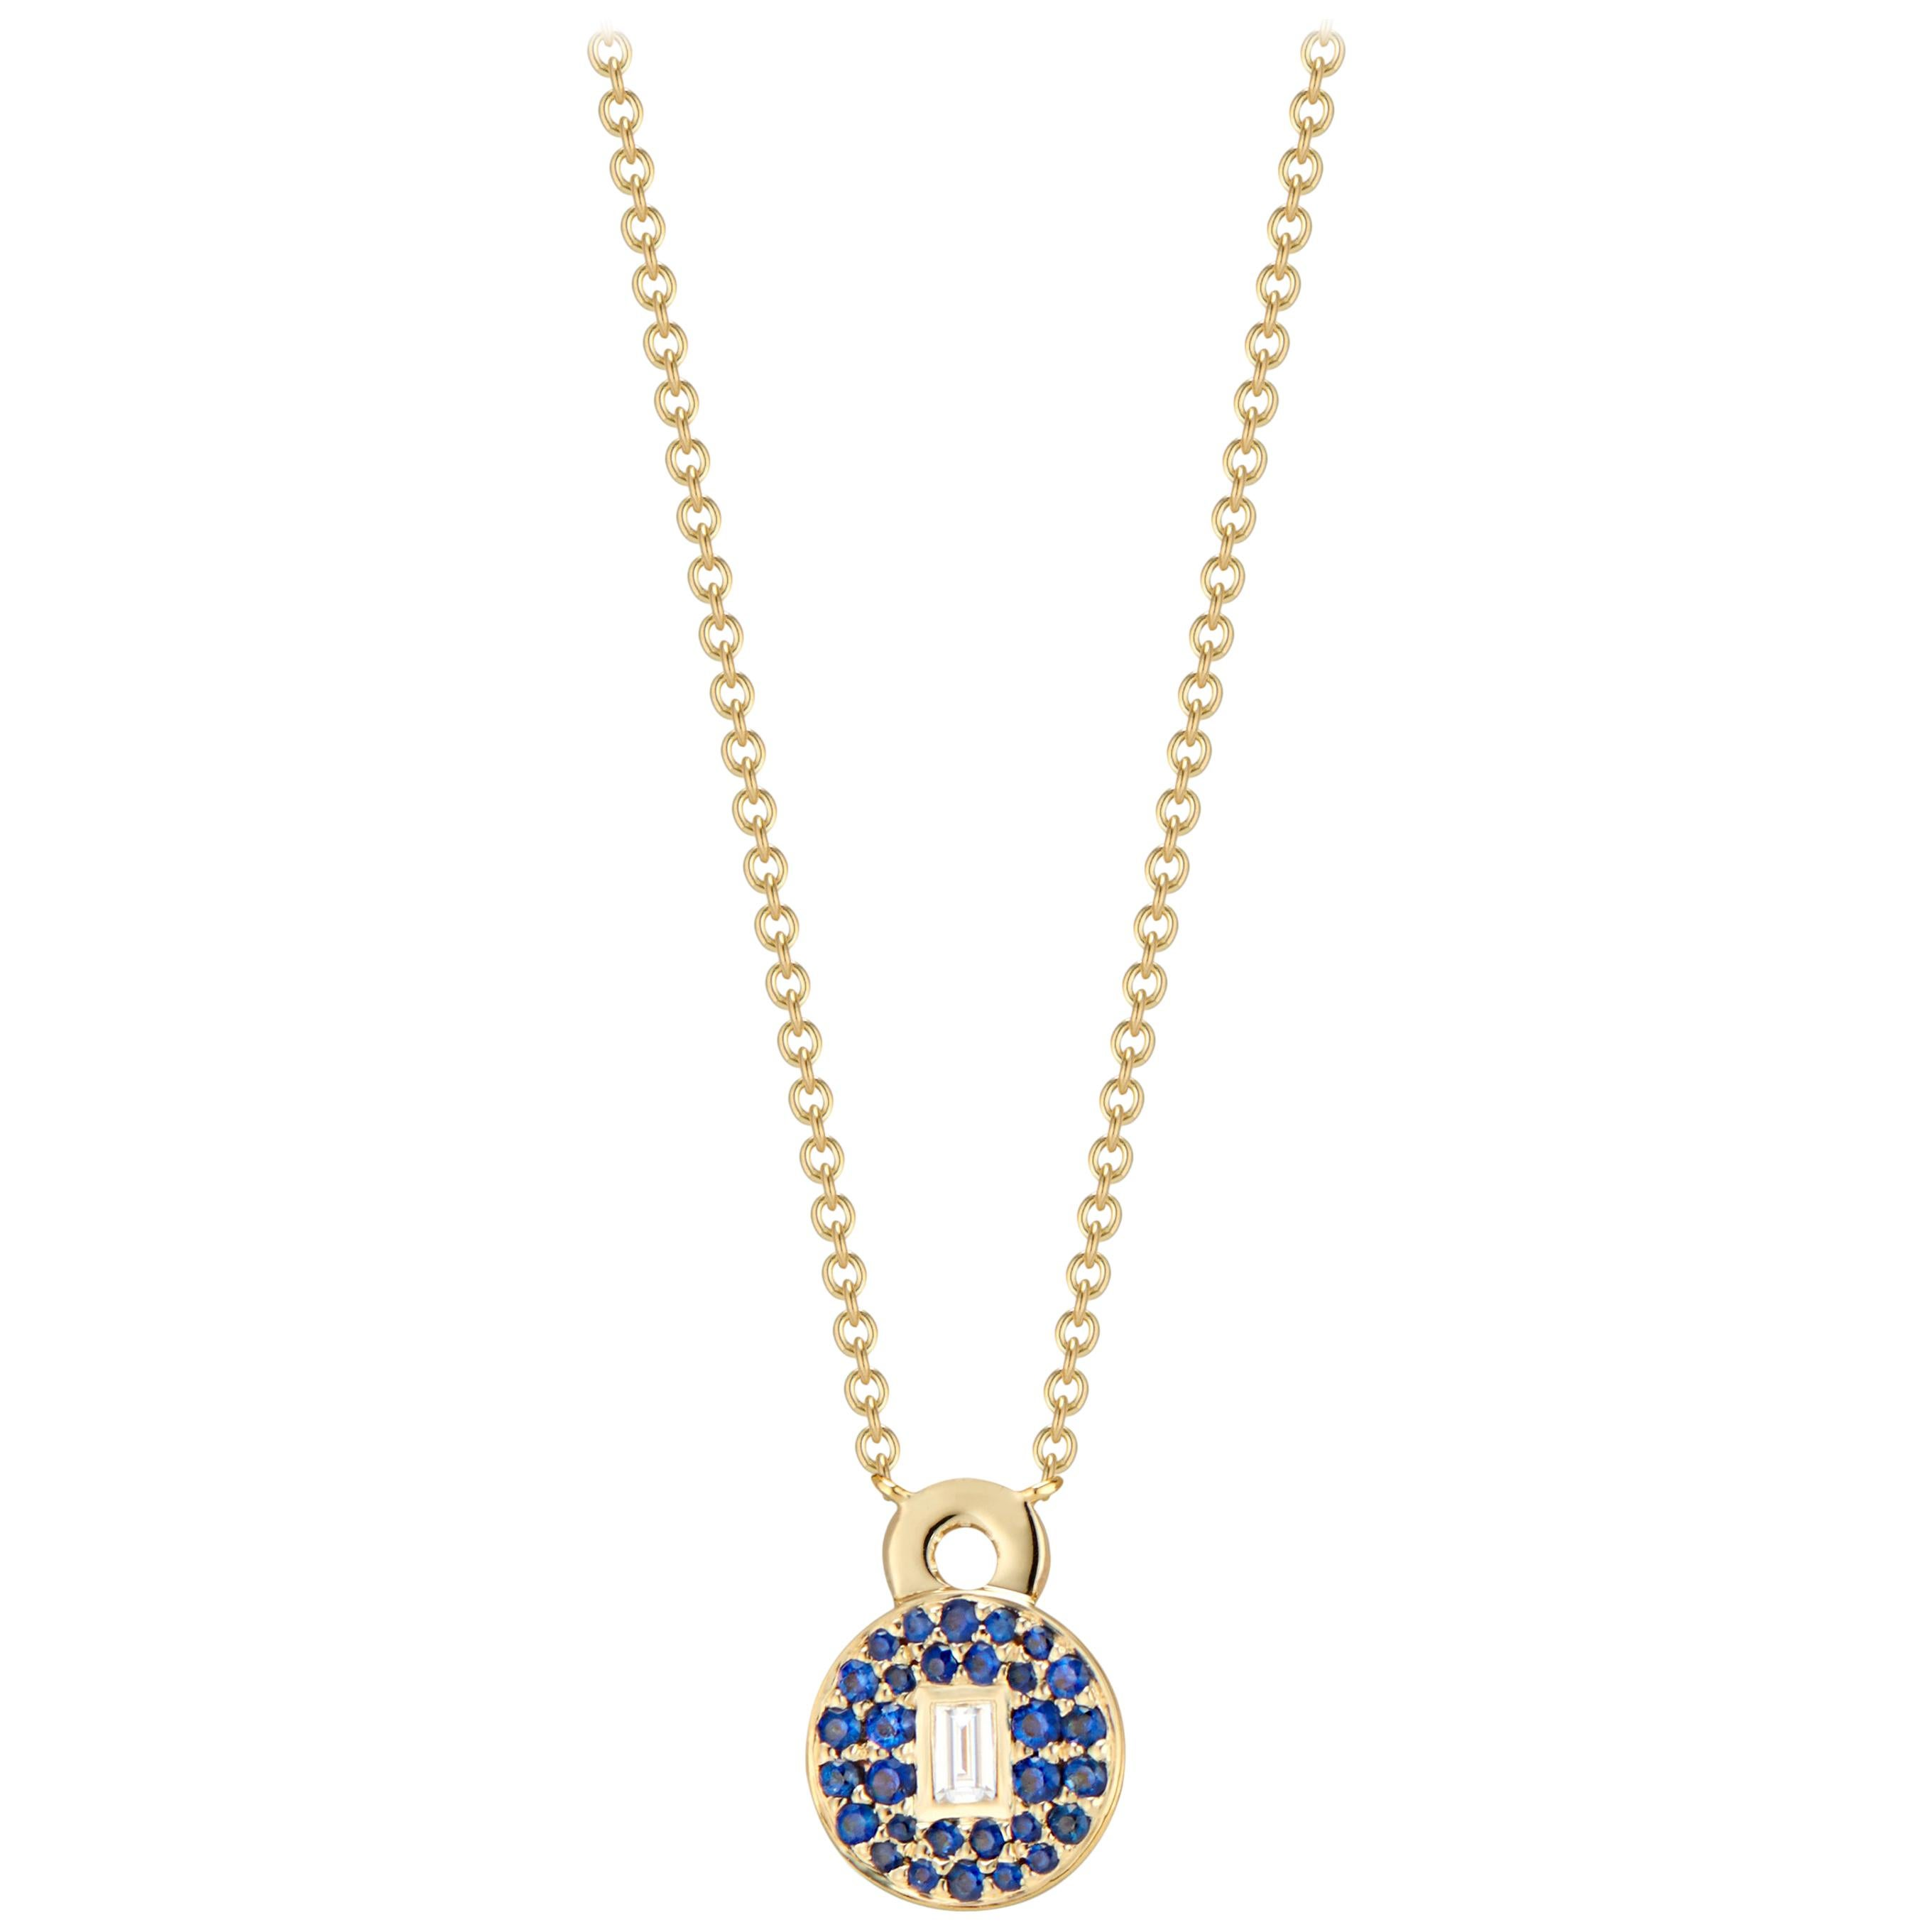 Love Lock Necklace with Blue Sapphires and Baguette Diamond Solitaire